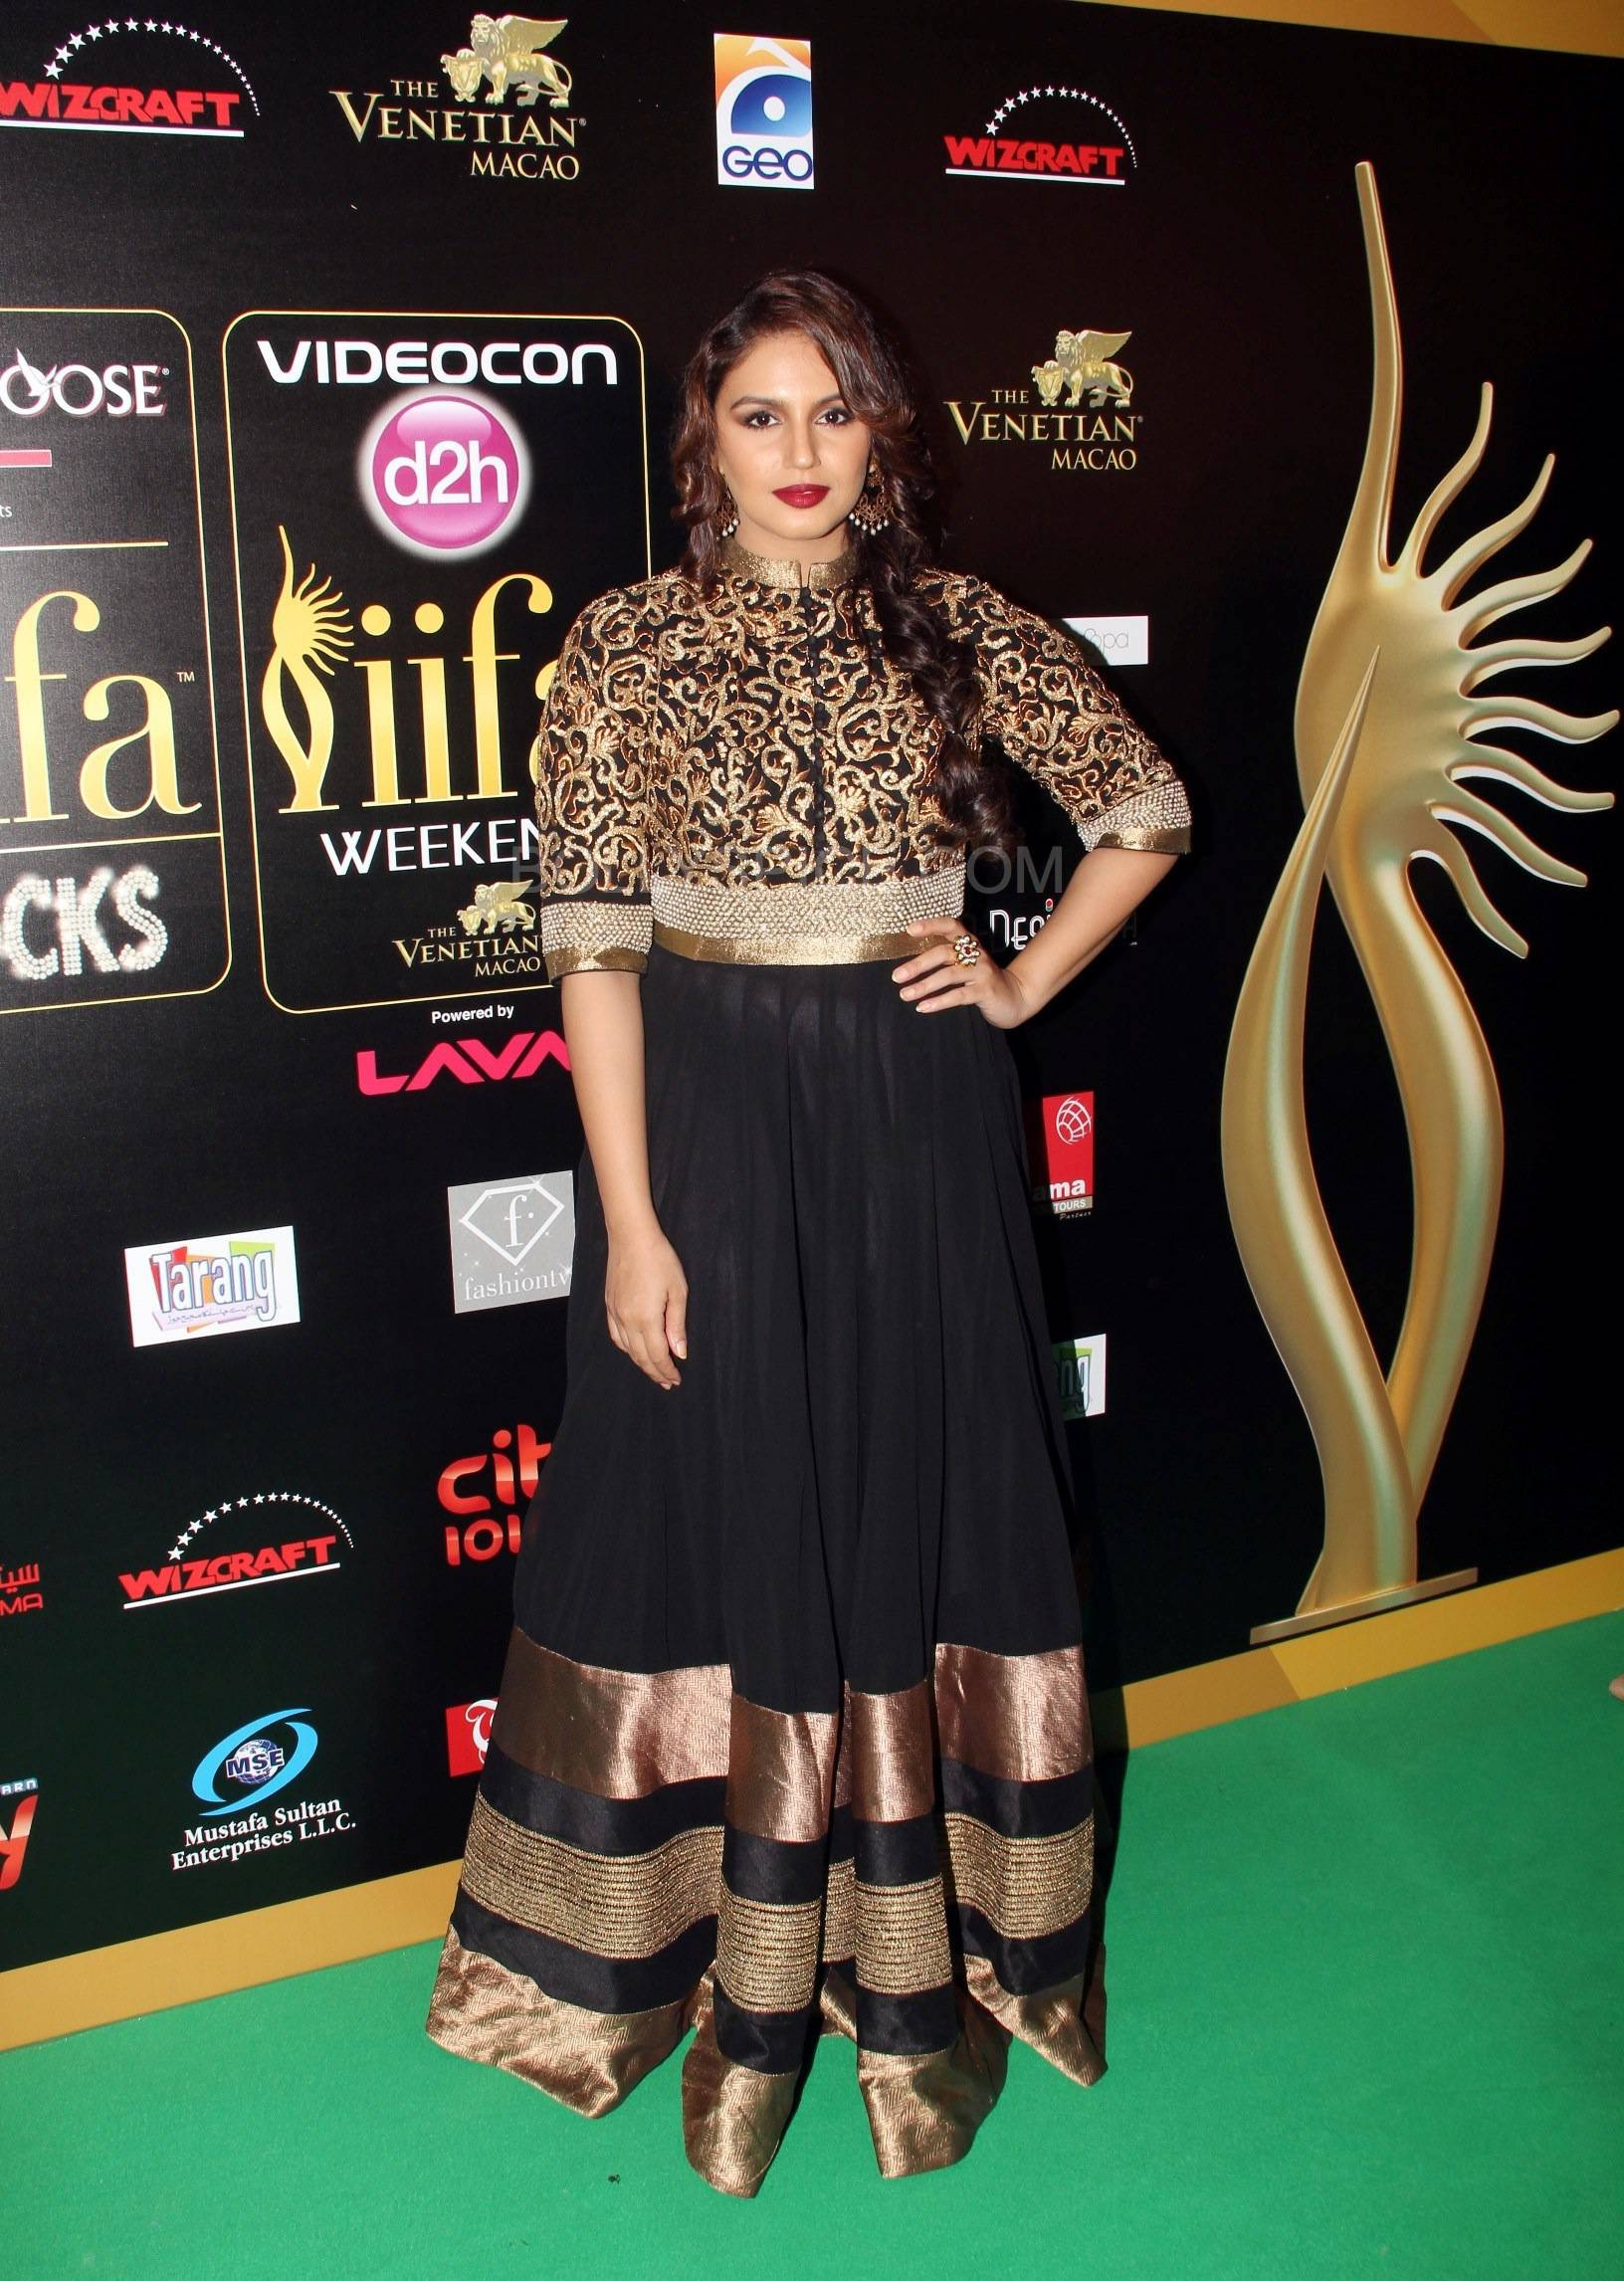 Huma Qureshi at IIFA Rocks Green carpet More from IIFA Rocks including winners and more Green Carpet pics! Pics added!